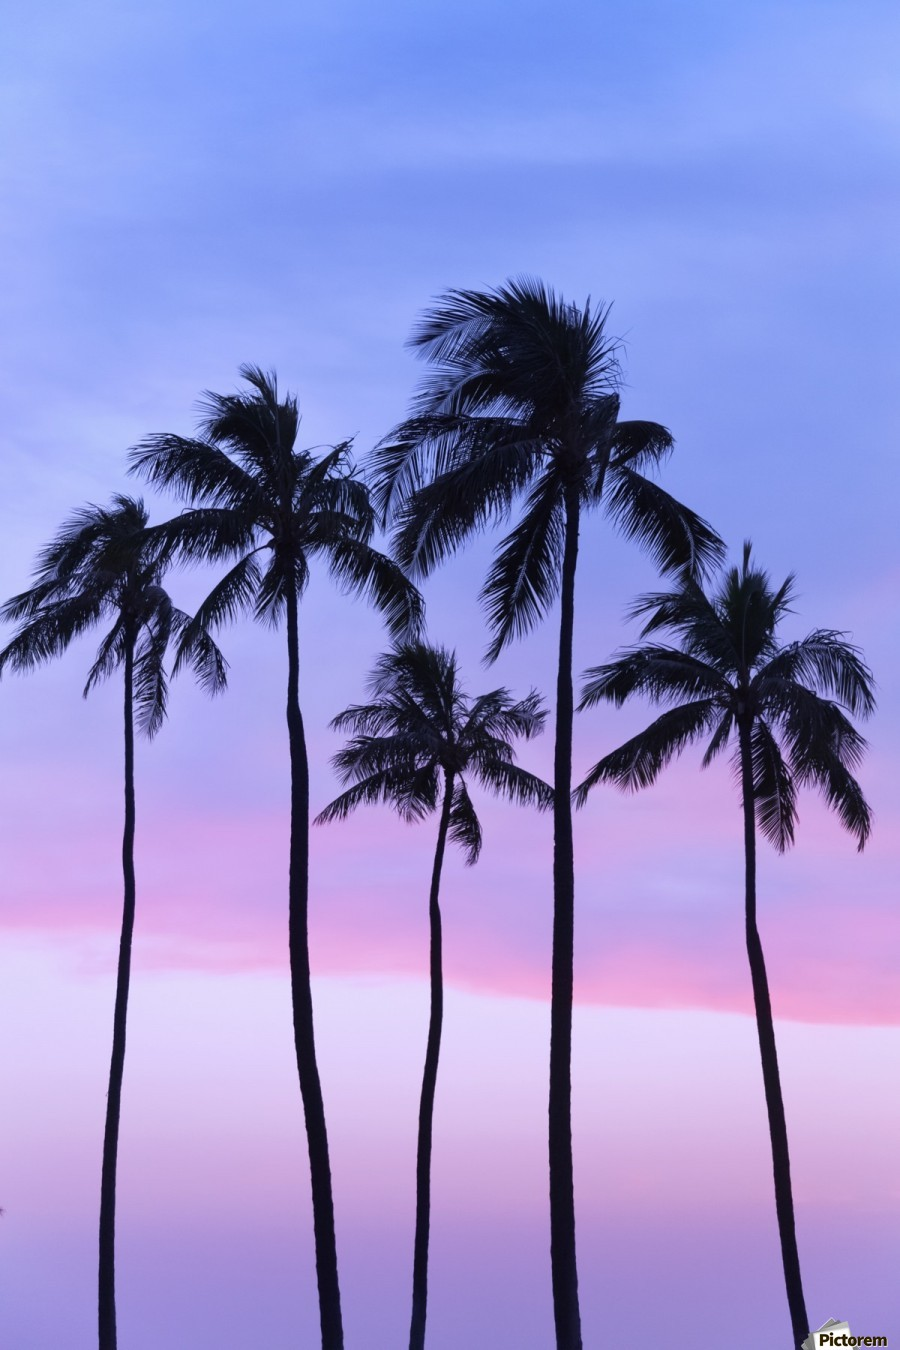 Five coconut palm trees in line with cotton candy sunset behind; Honolulu, Oahu, Hawaii, United States of America  Print